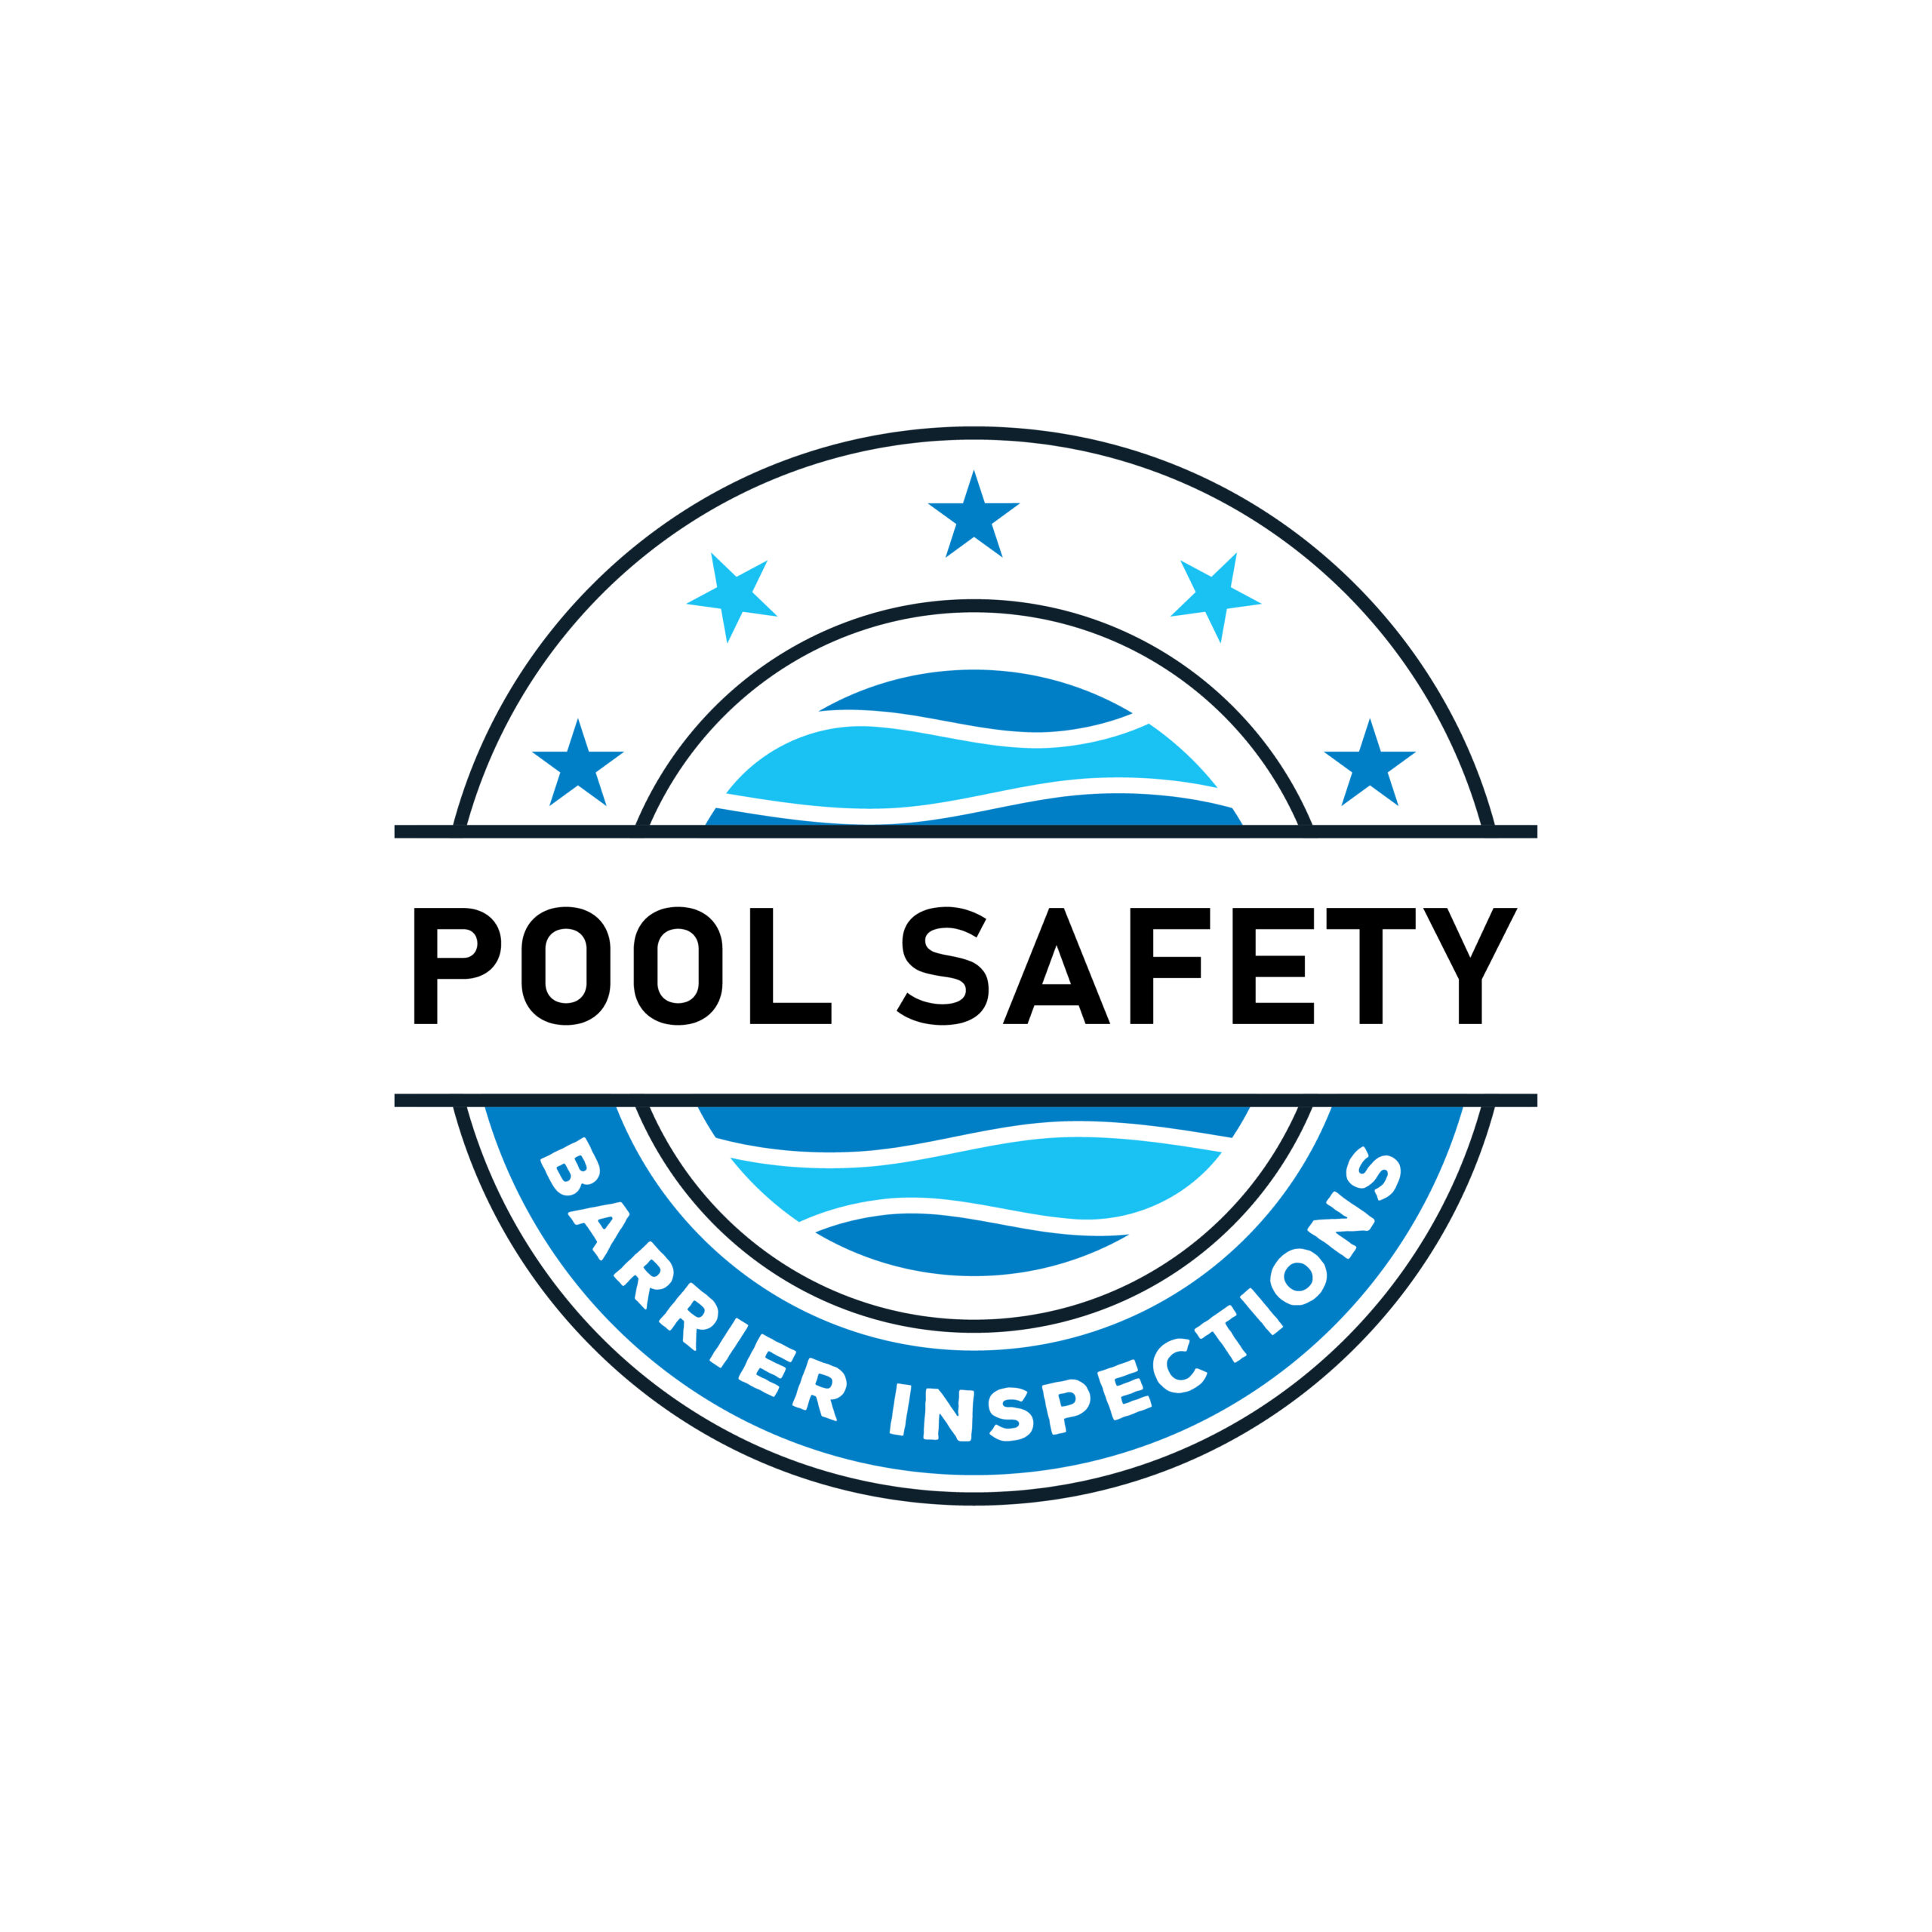 Pool Safety Barrier Inspections